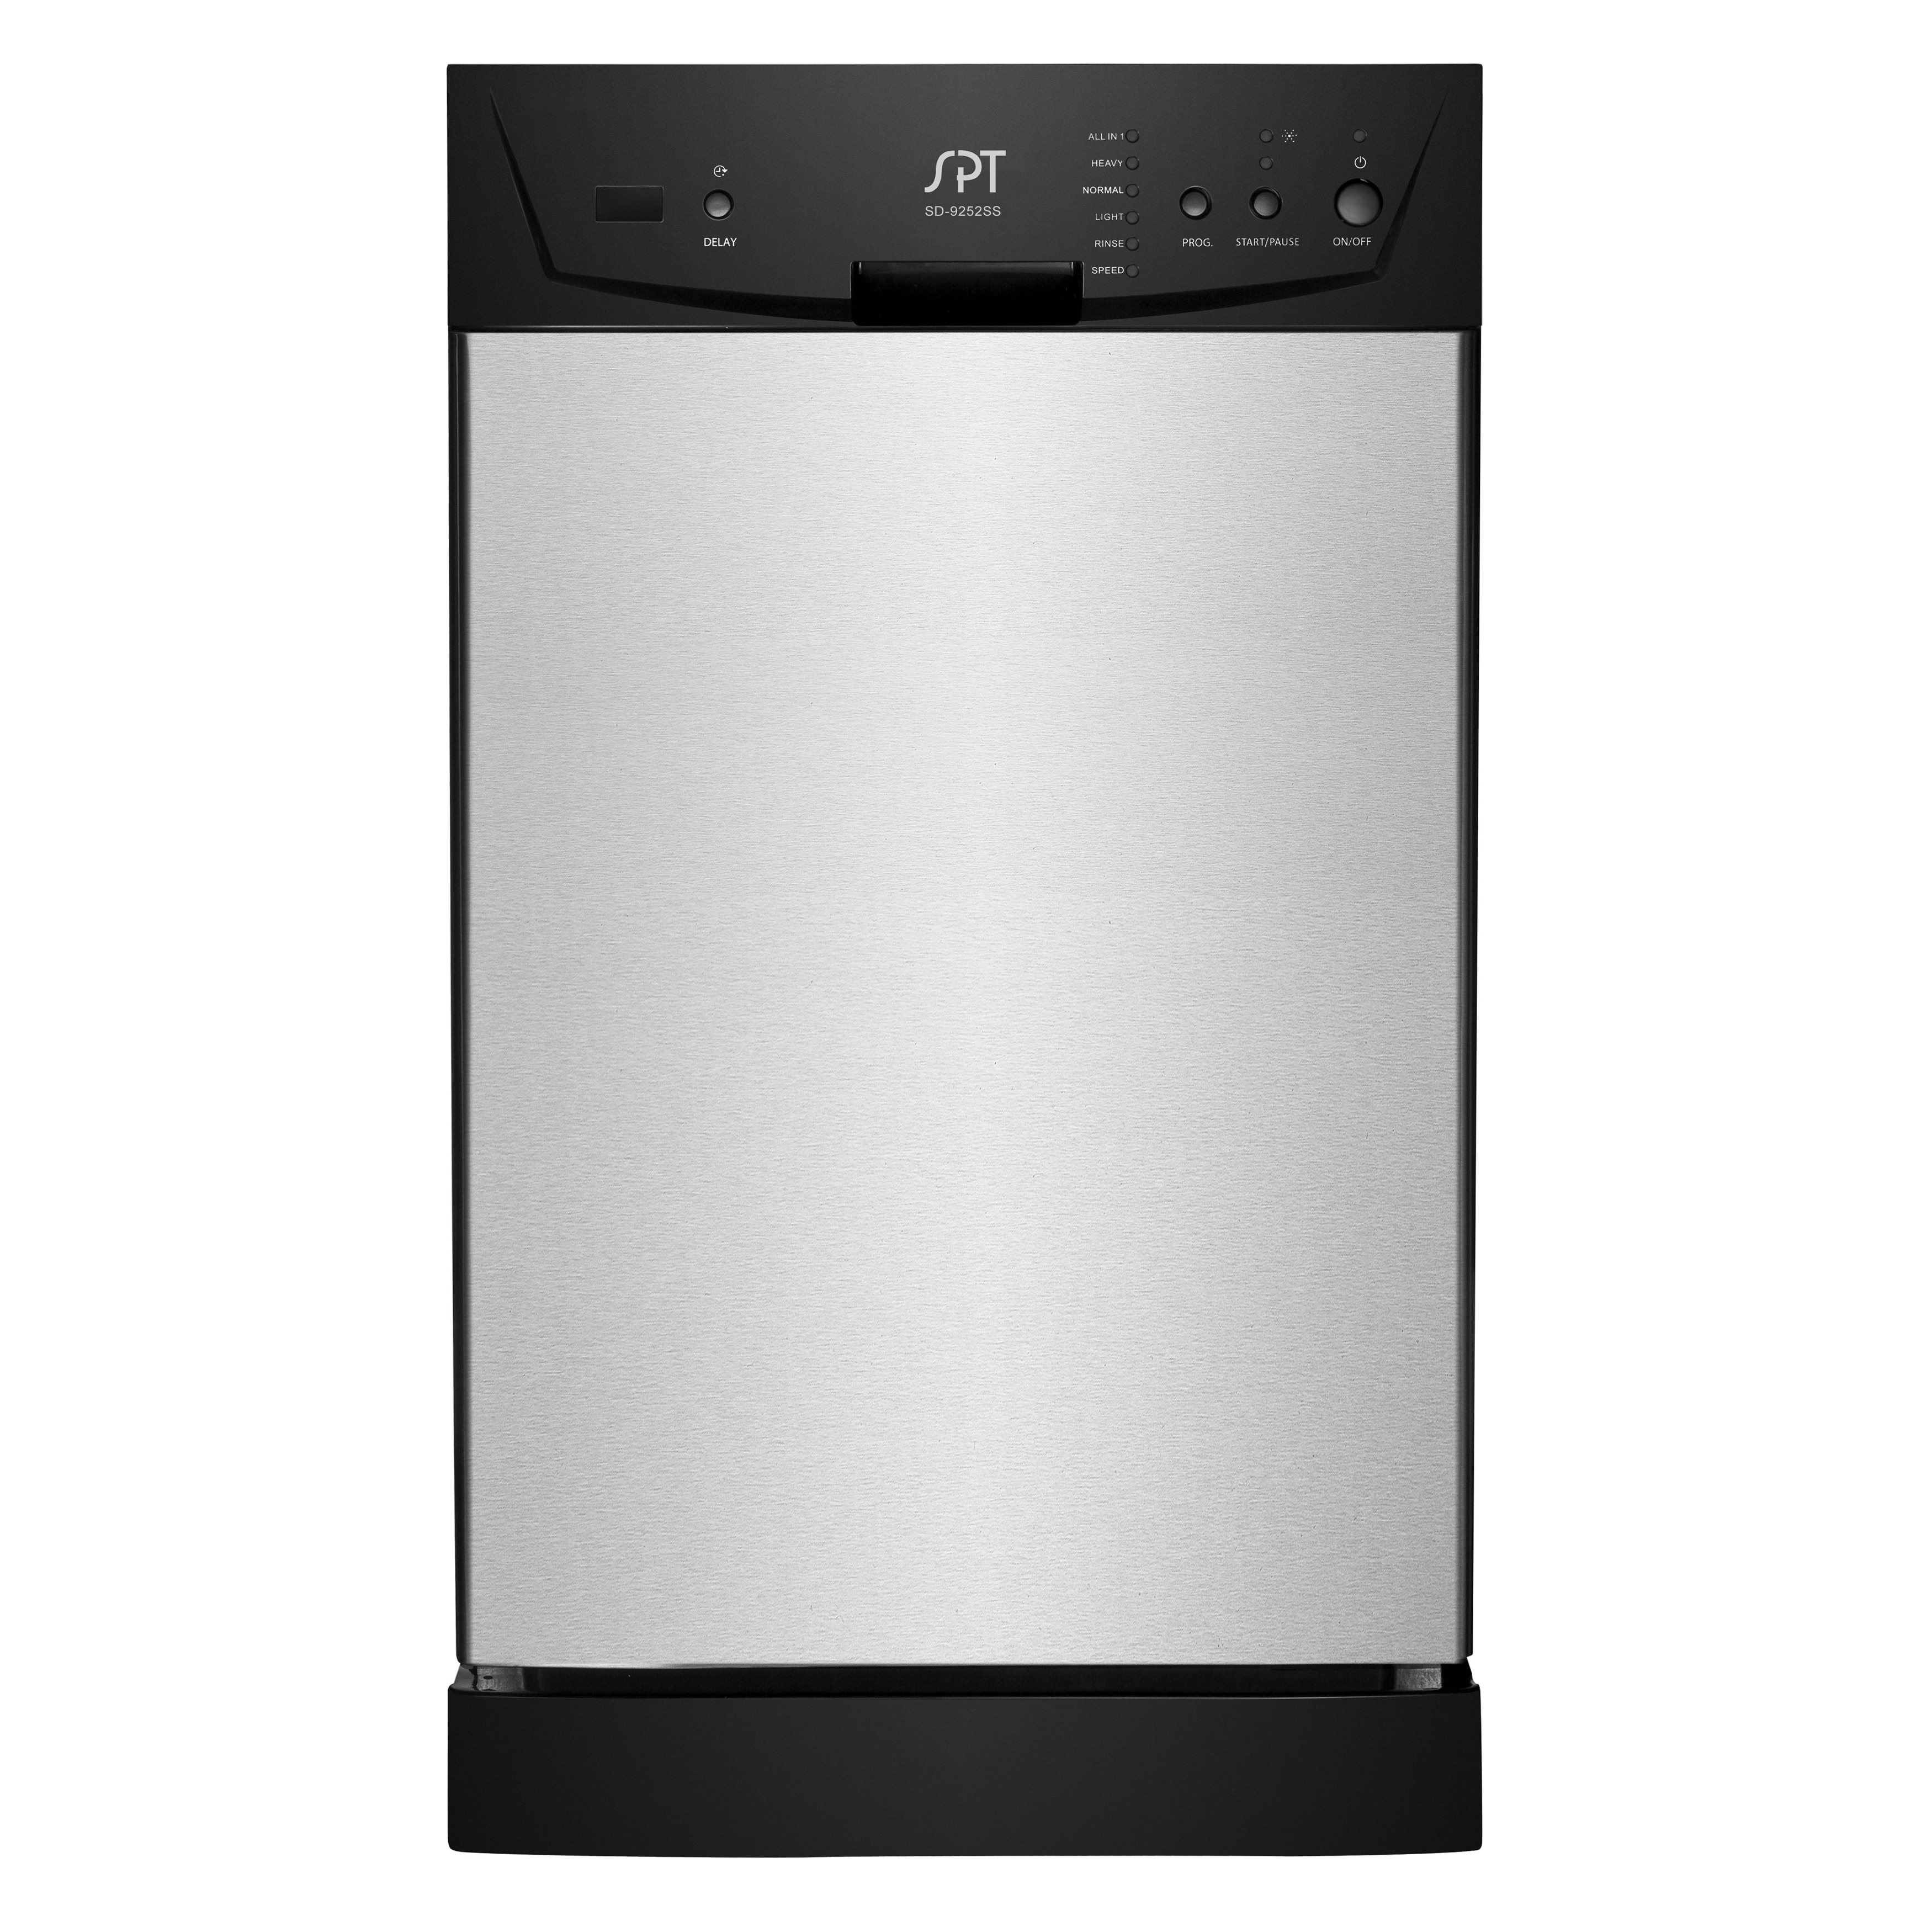 Good SPT Energy Star Stainless Steel 18 Inch Built In Dishwasher   Free Shipping  Today   Overstock   17256950